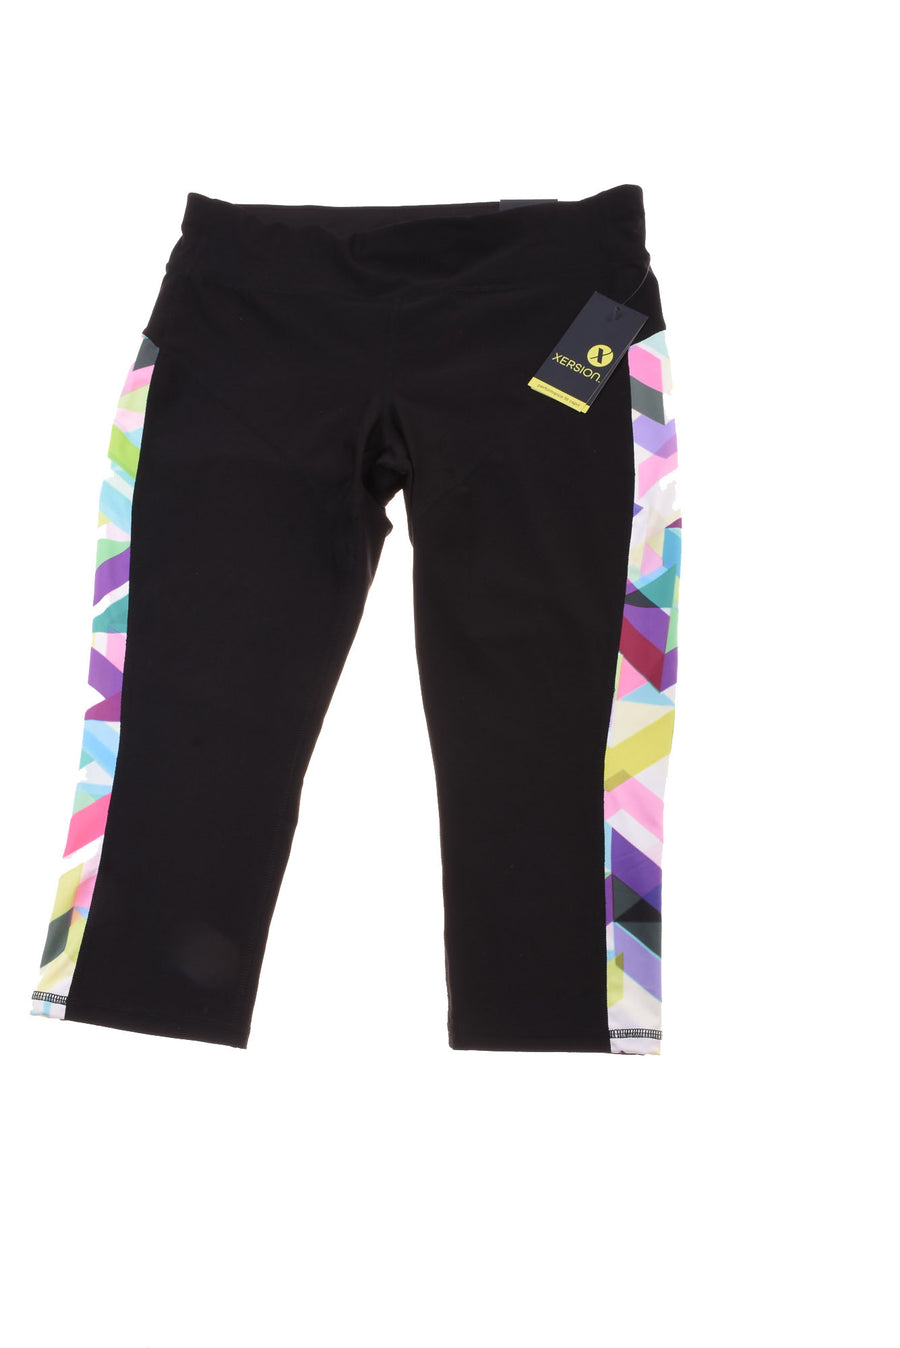 3d928d57402eb USED Xersion Women's Yoga Pants Medium Black & White/Print - Village ...